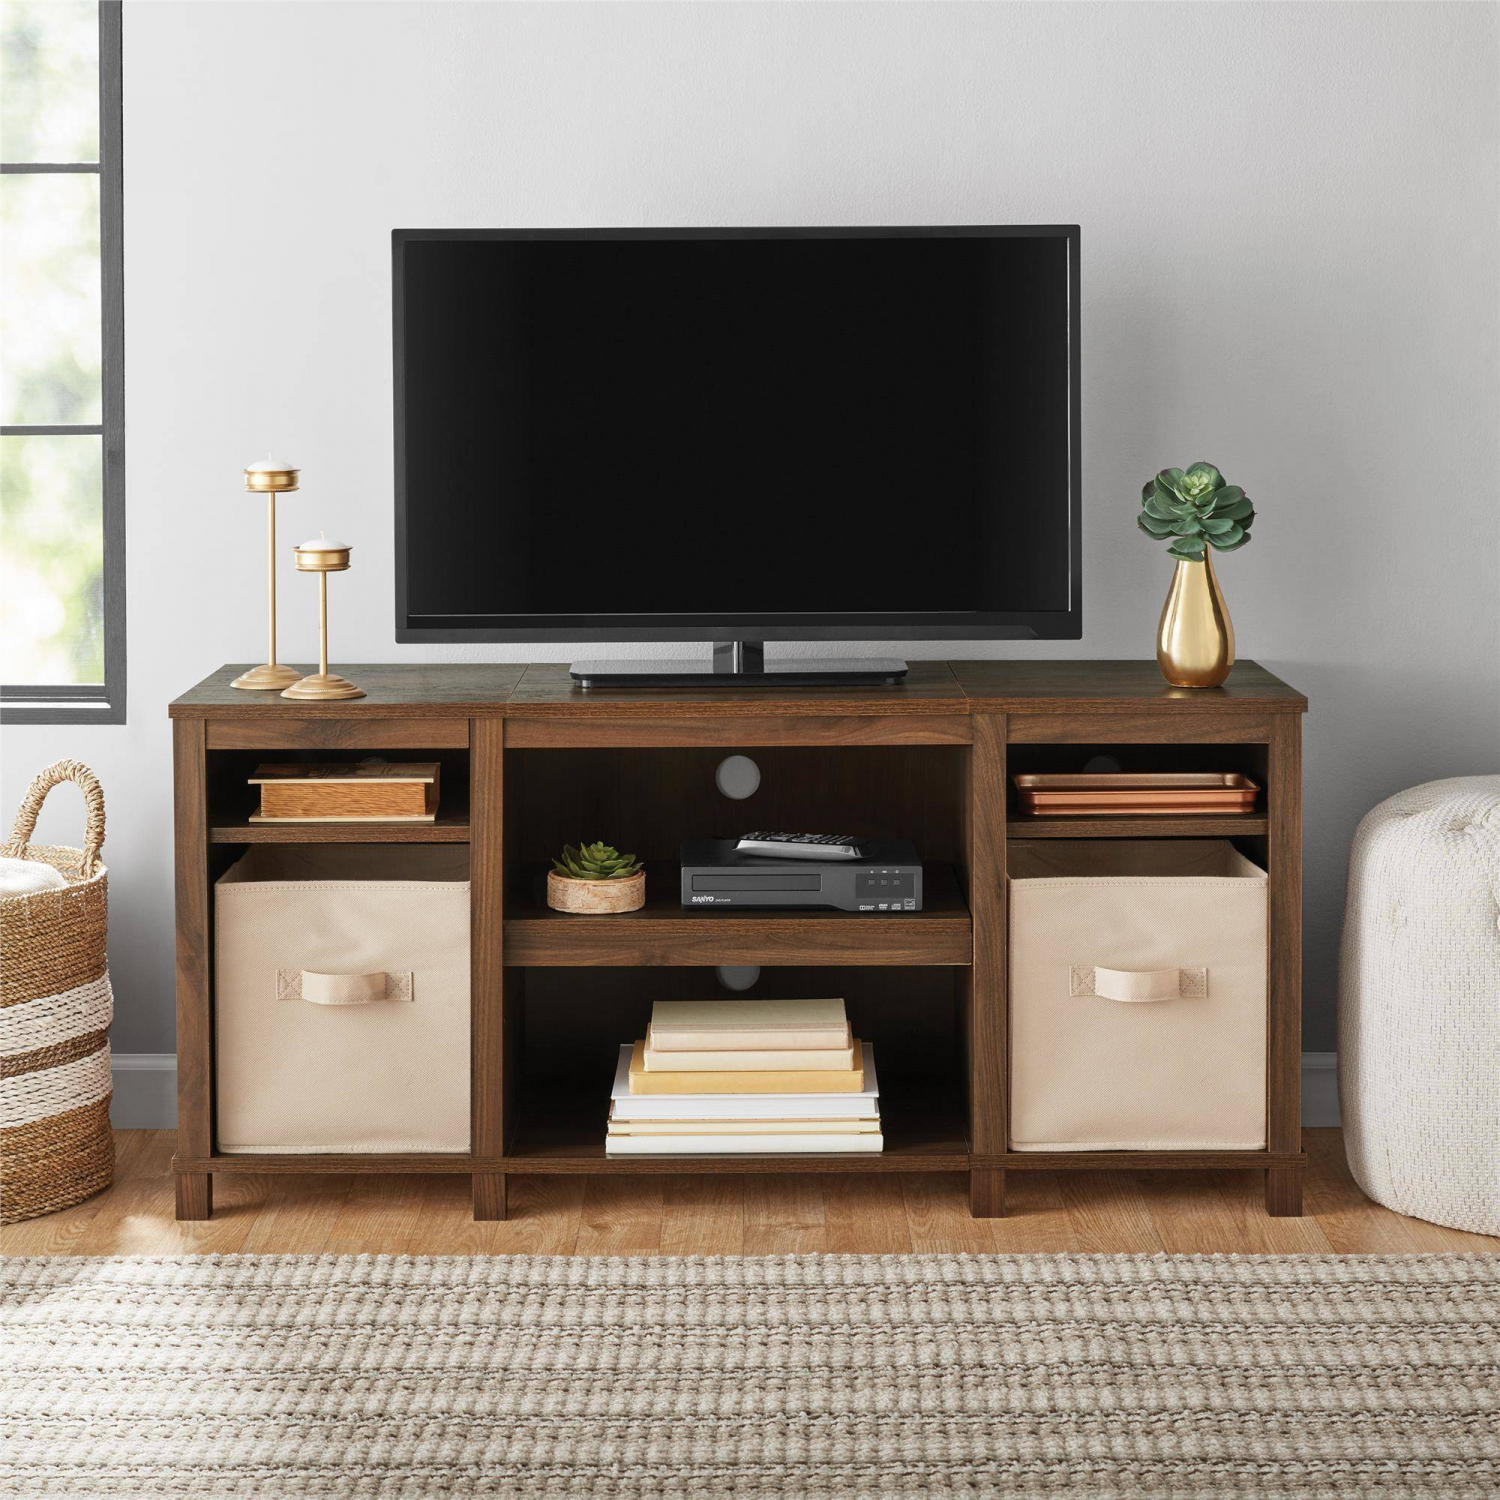 type of TV table from wood